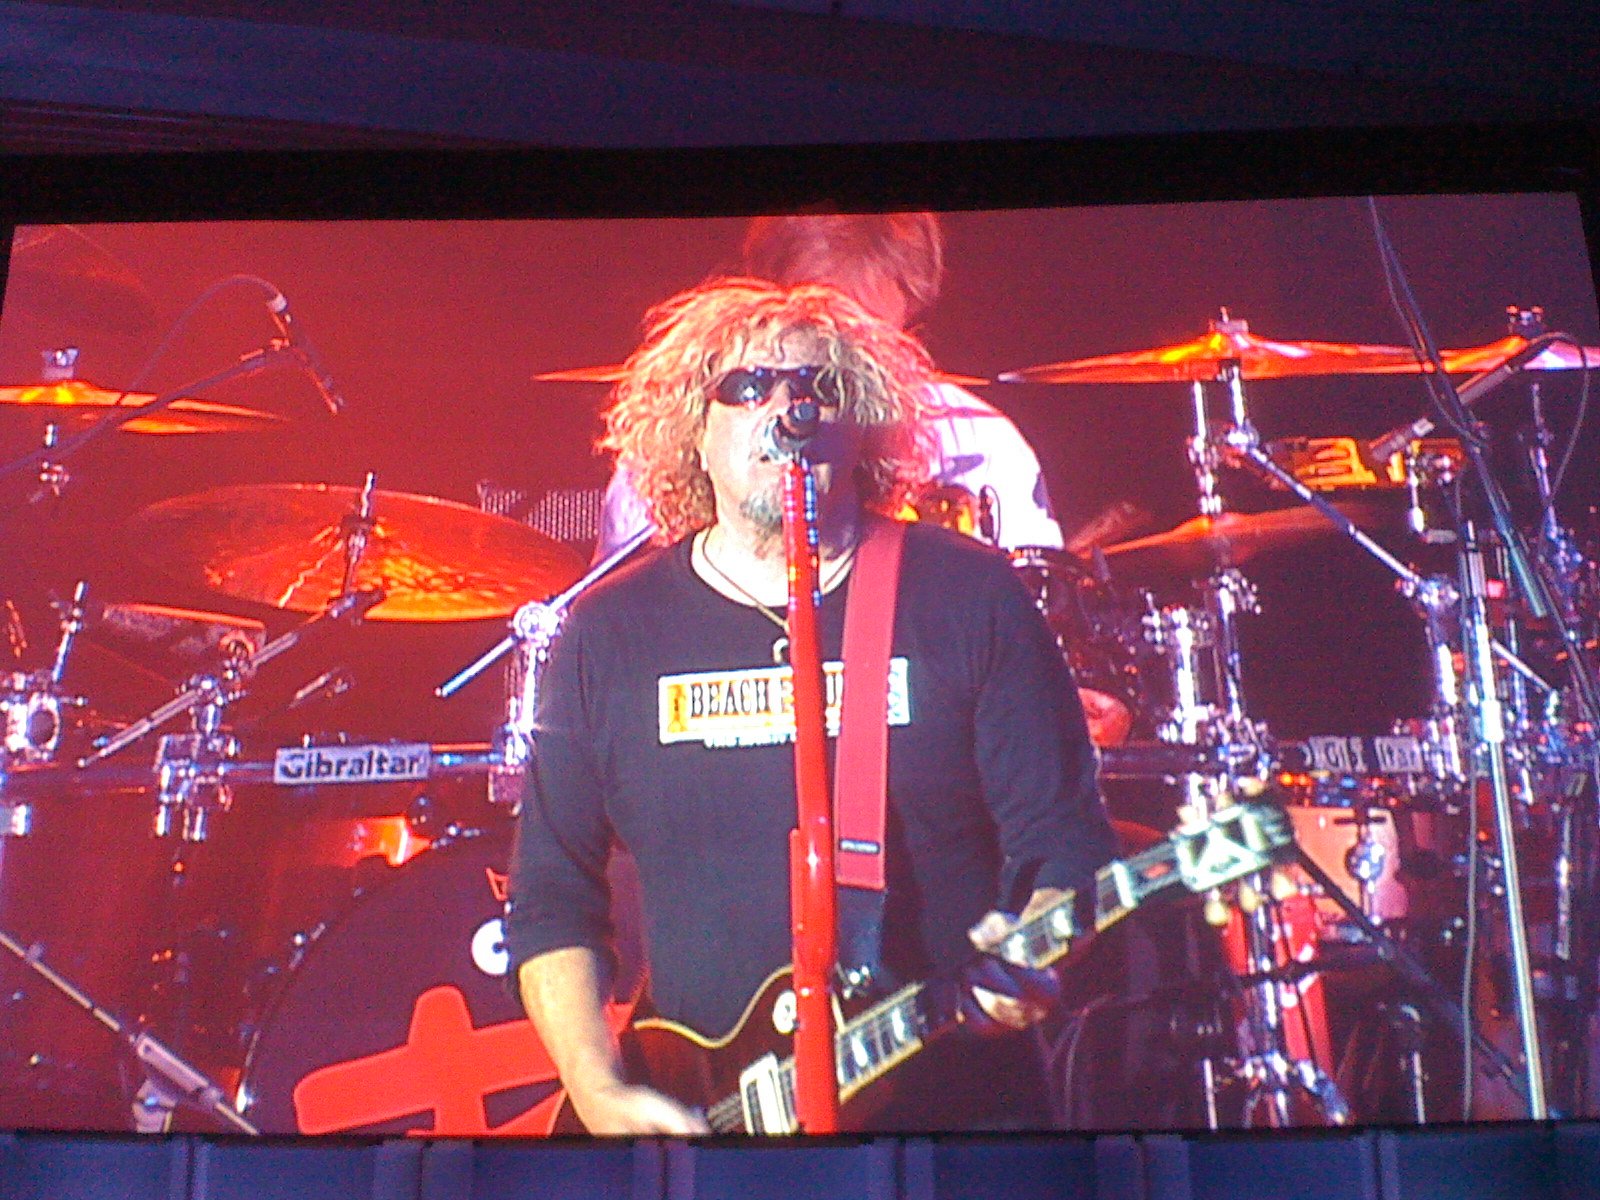 Empire empire produces sammy hagar the wabos for a corporate empire produces sammy hagar the wabos for a corporate event in orlando fl kristyandbryce Choice Image